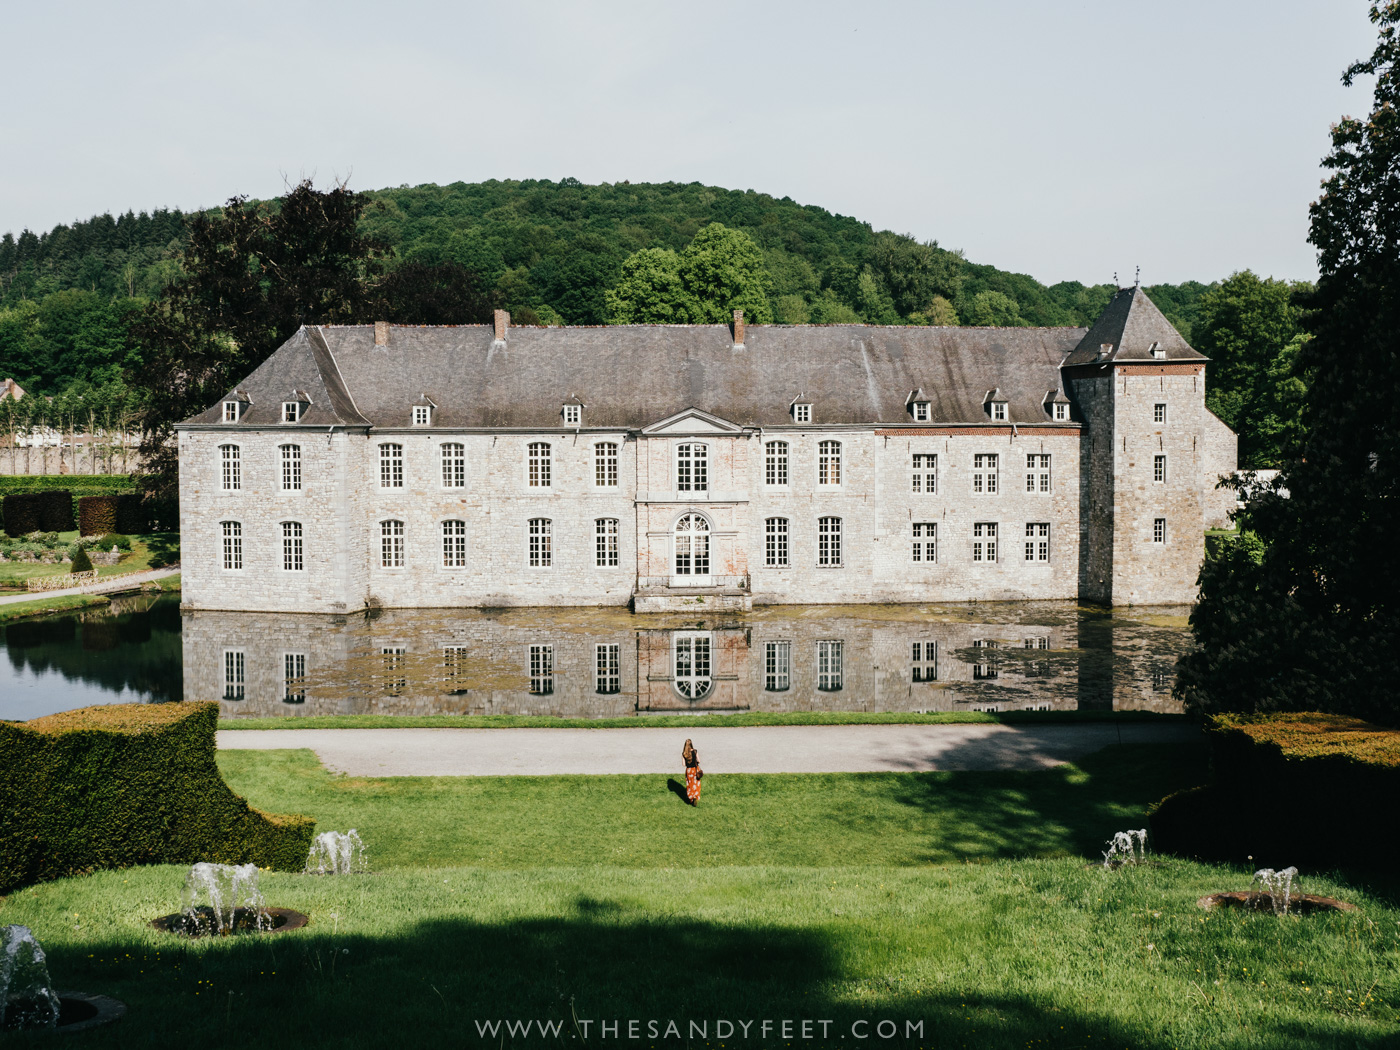 Les Jardins d'Annevoie | A perfect weekend itinerary in Belgium and one of the best things to do in and around Namur and Dinant in Belgium's Wallonia Region.